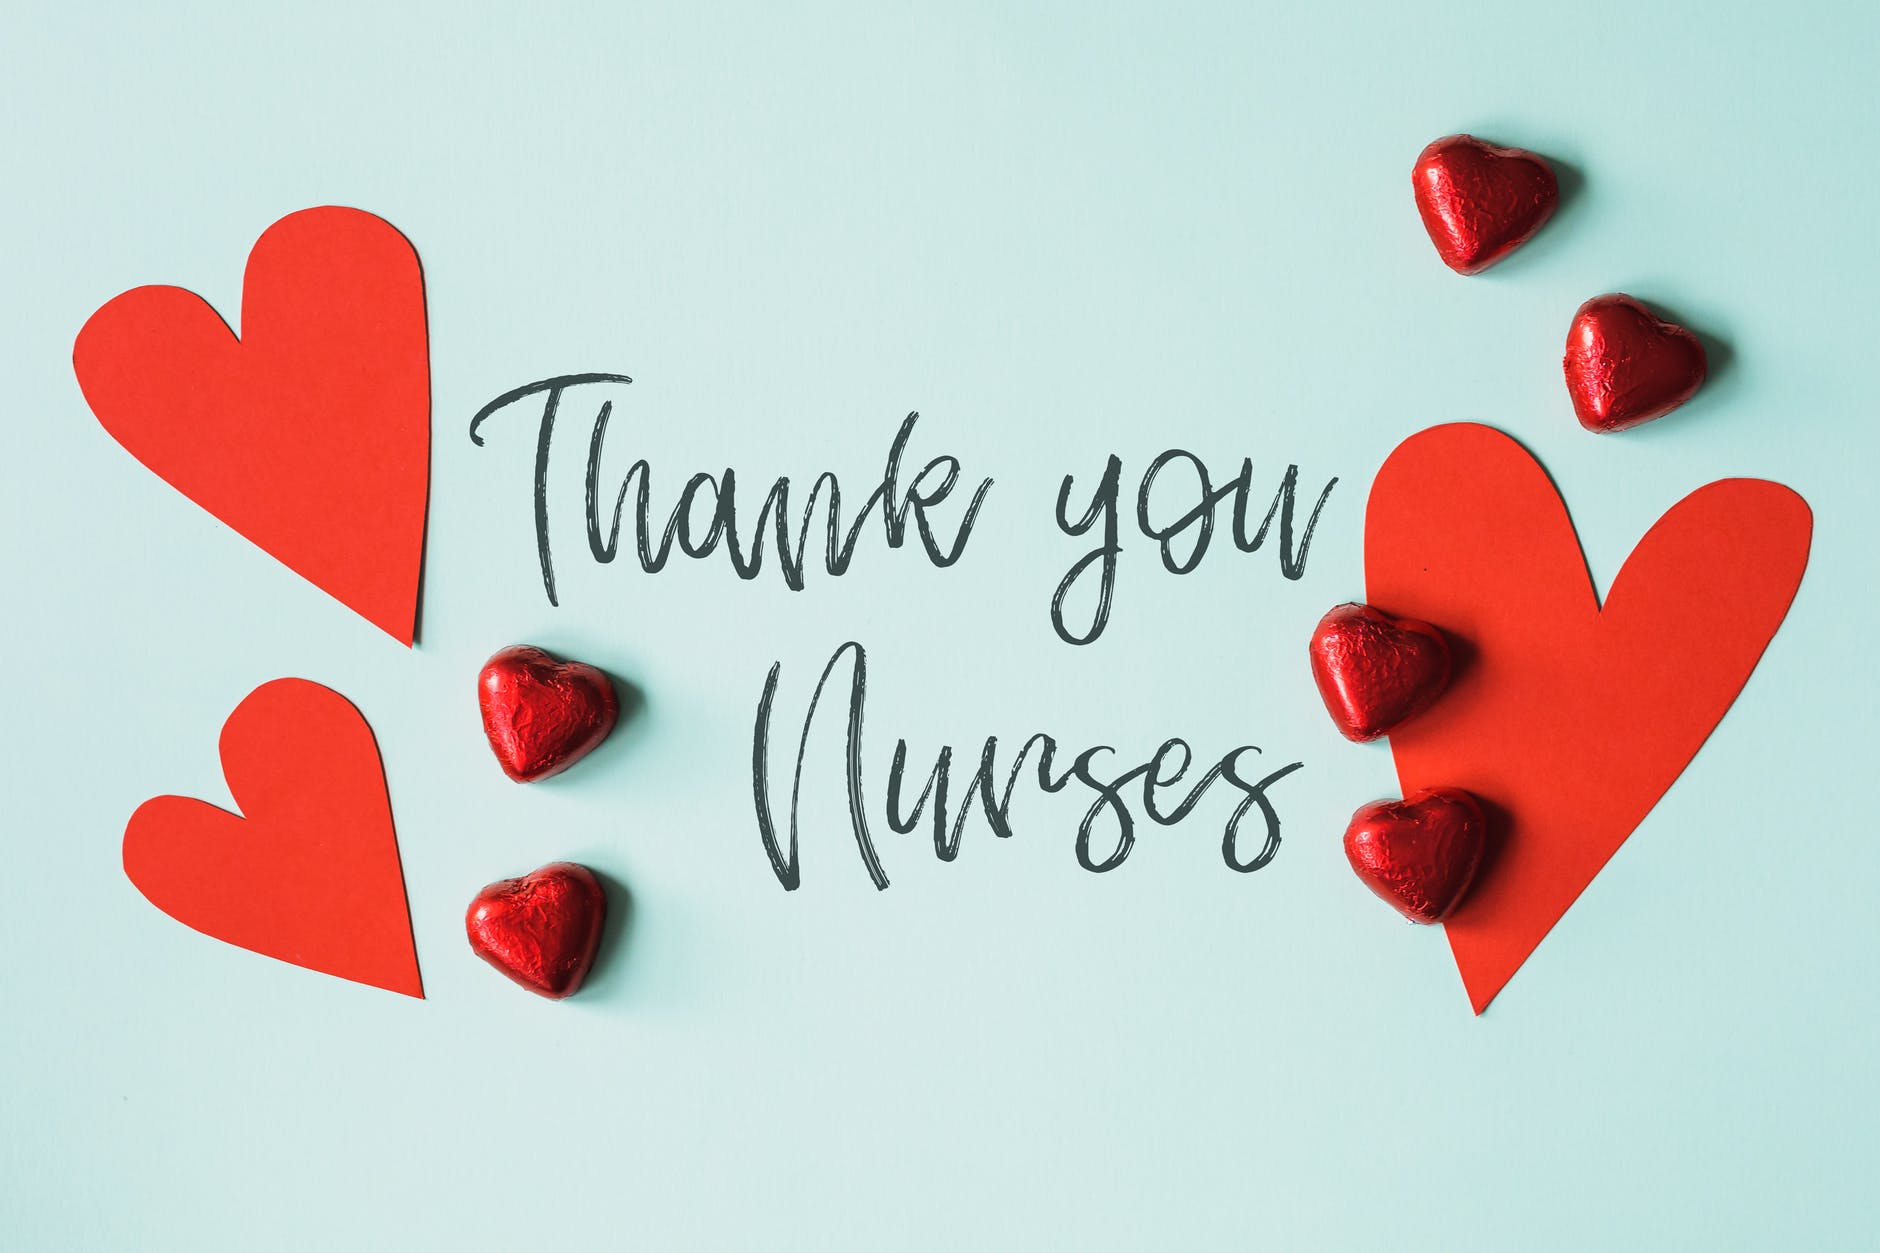 Celebrating the Frontline Warriors on International Nurses Day